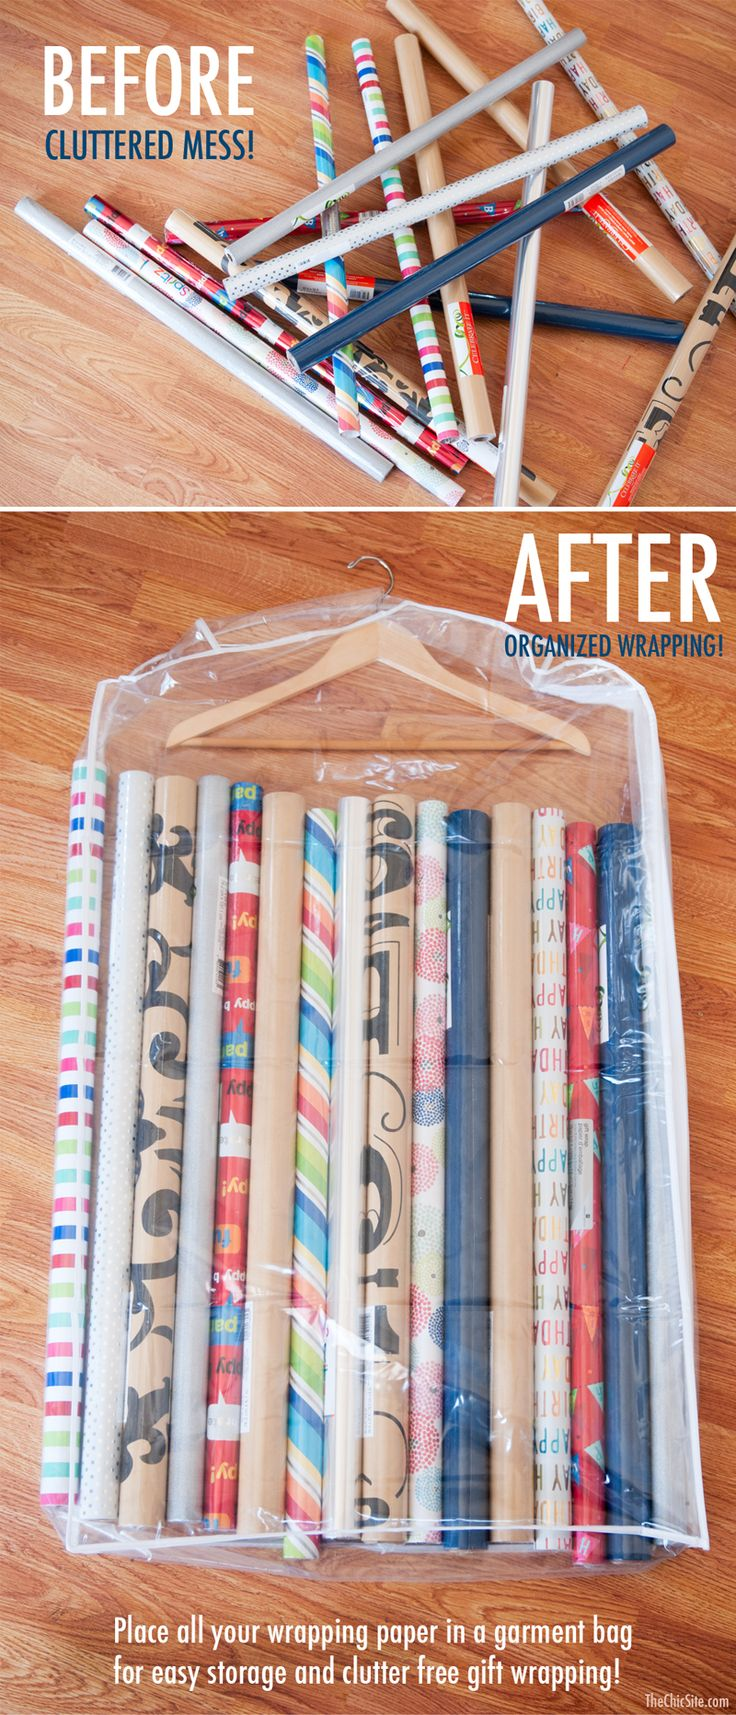 DIY Hanging Garment Bag Gift Wrap Storage ! I love this idea!!